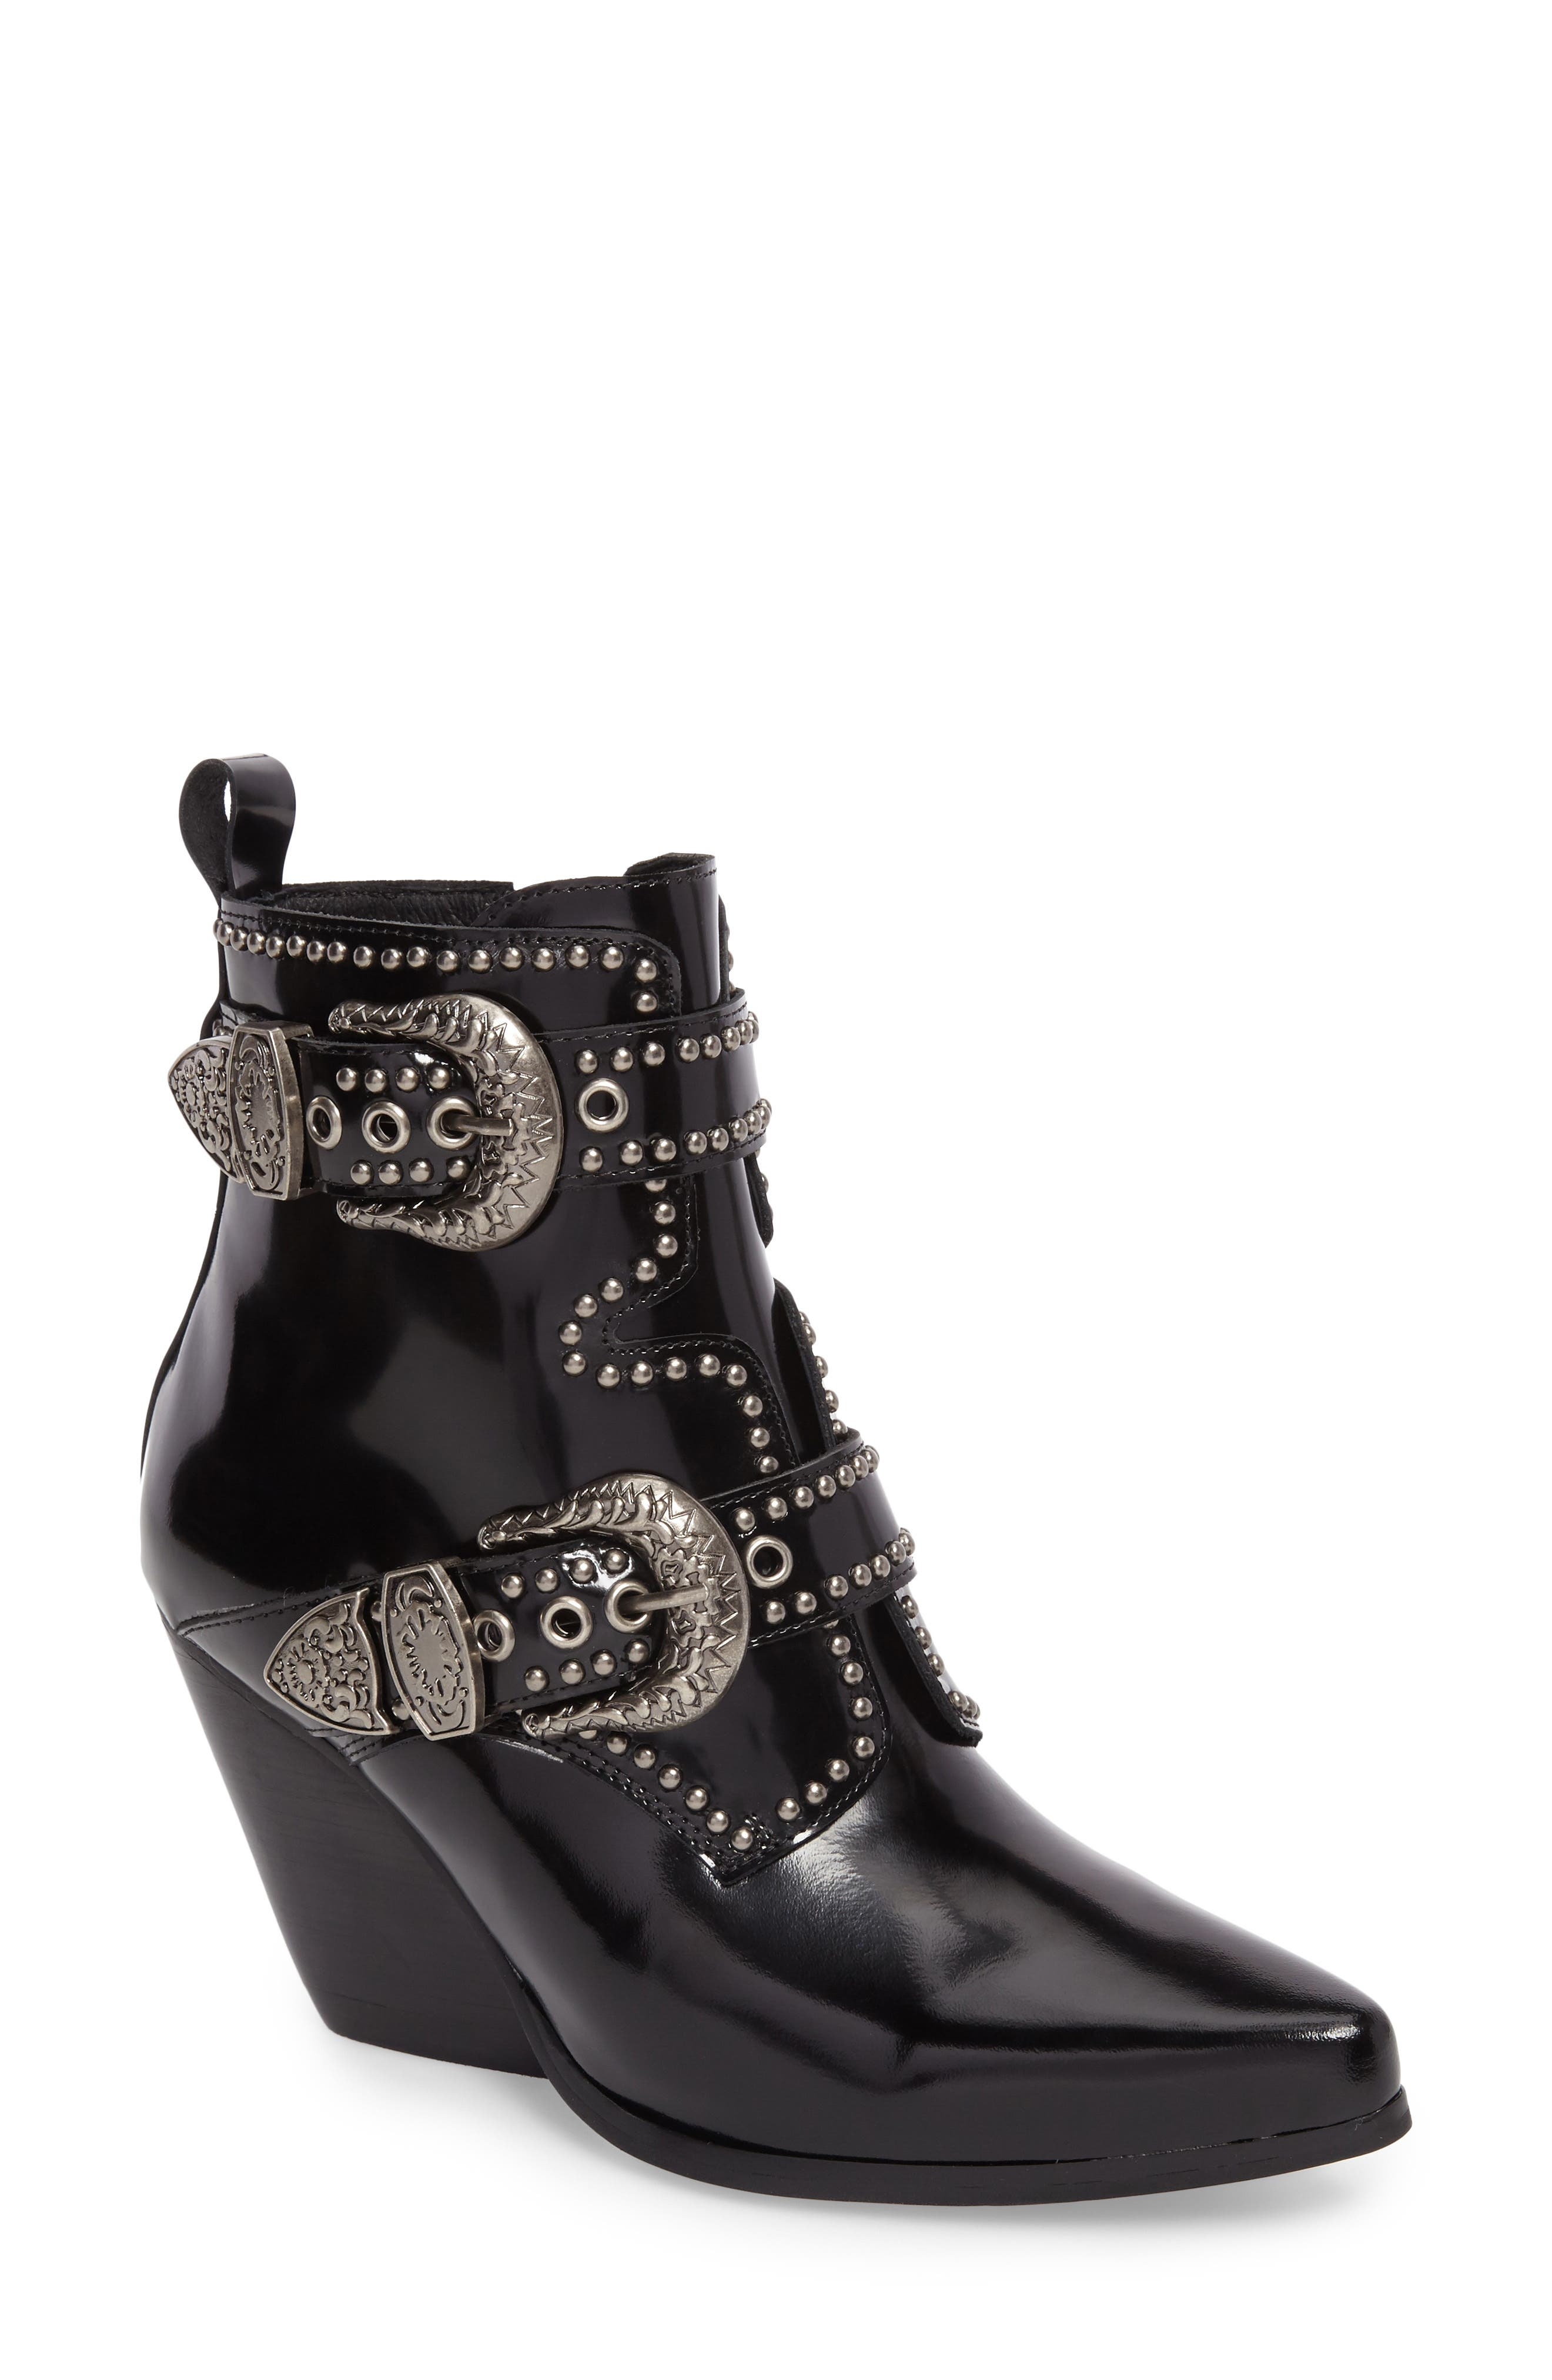 Welton Bootie,                         Main,                         color, Black/ Silver Leather